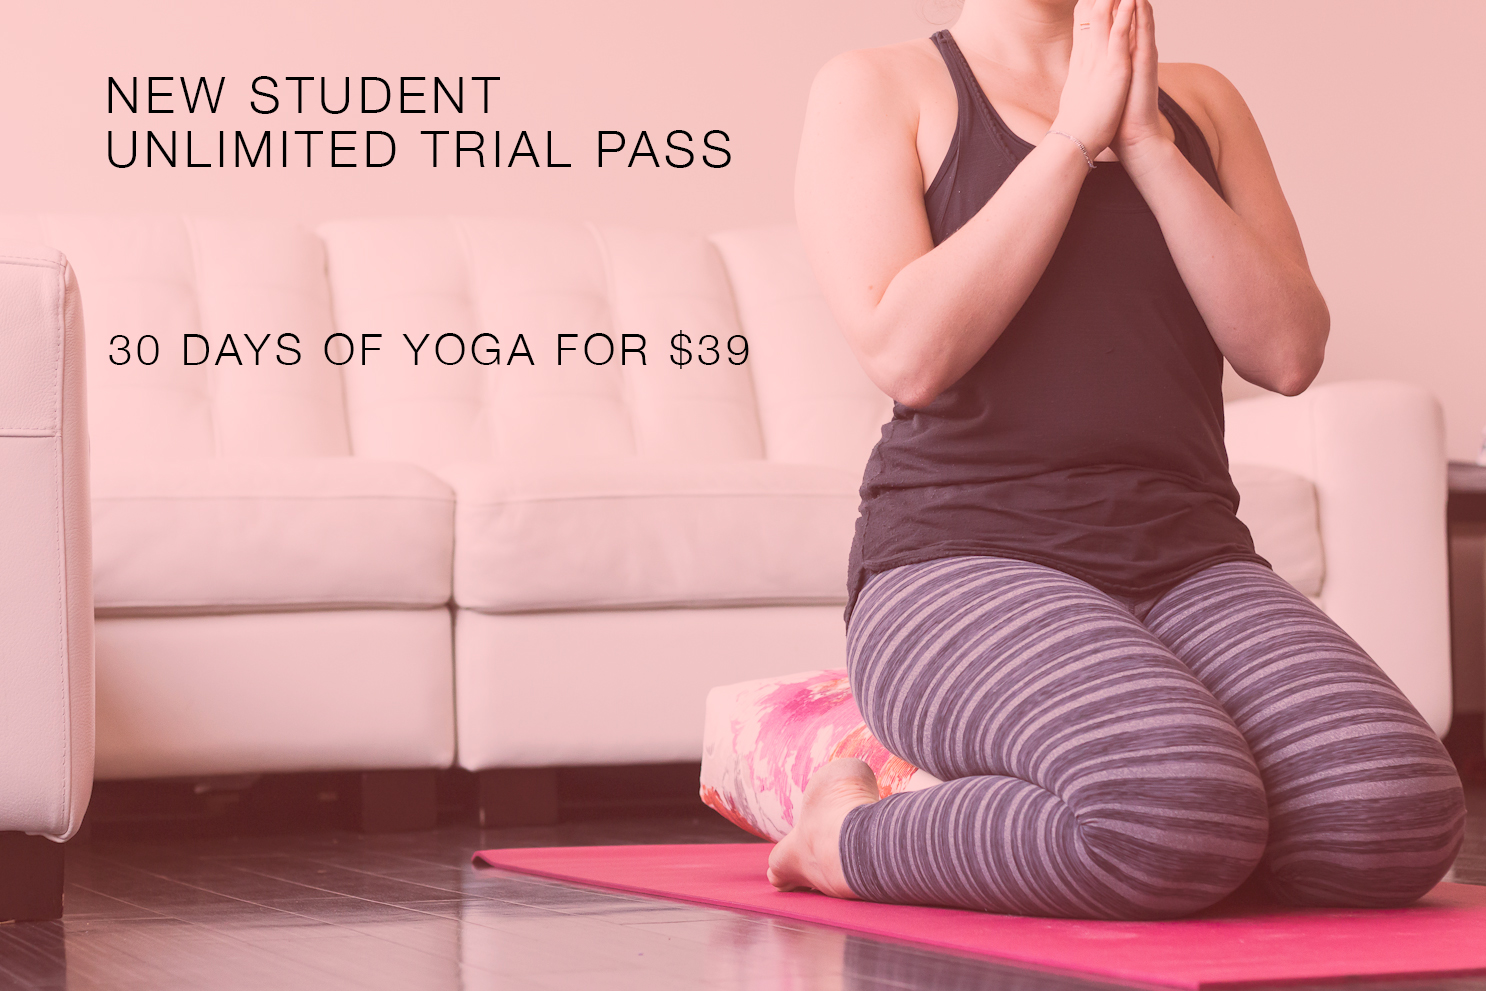 Yogalife unlimited trial pass for new students